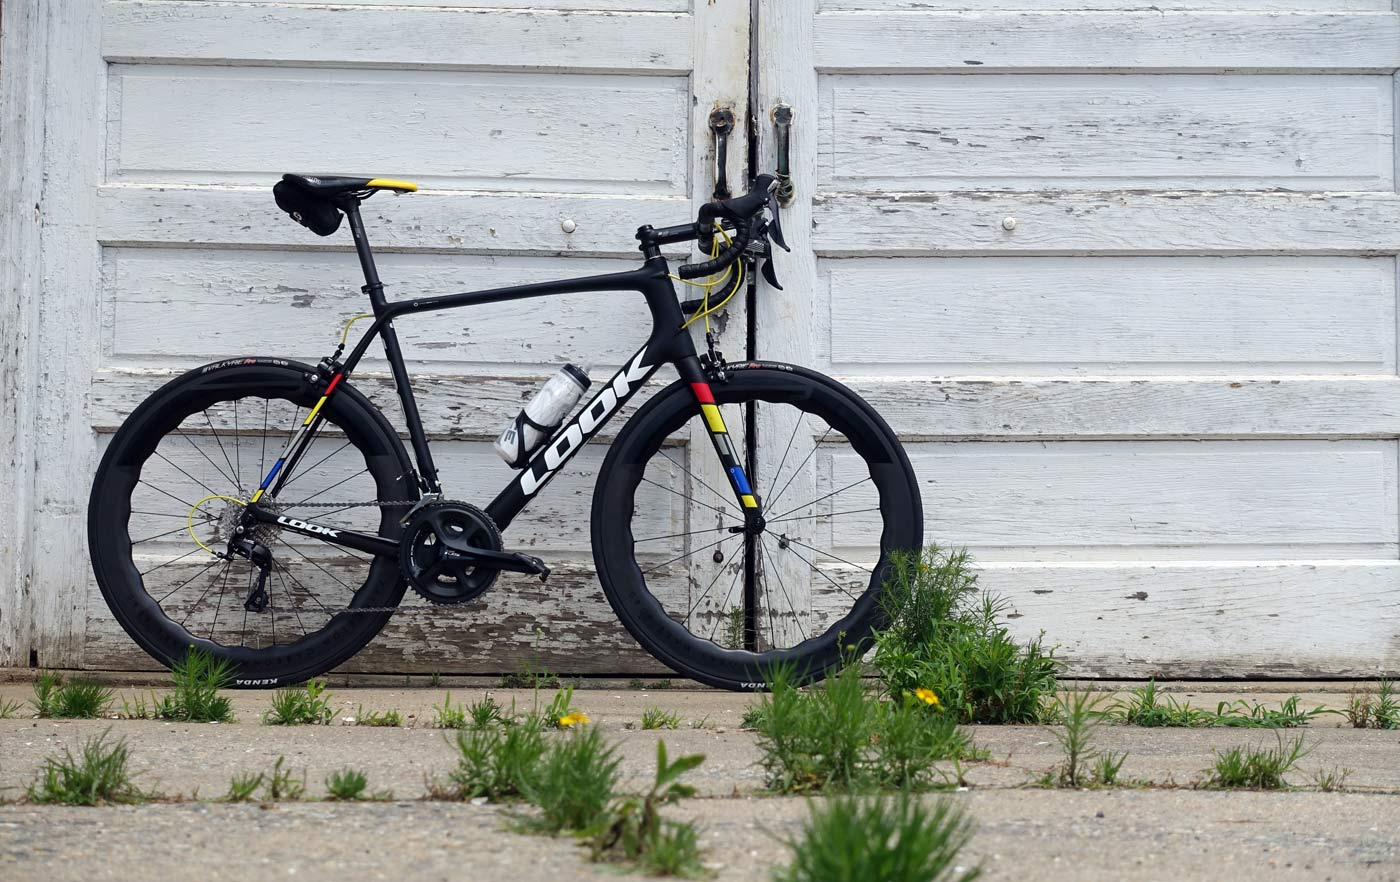 2018 Look 785 Huez road bike long term review and test